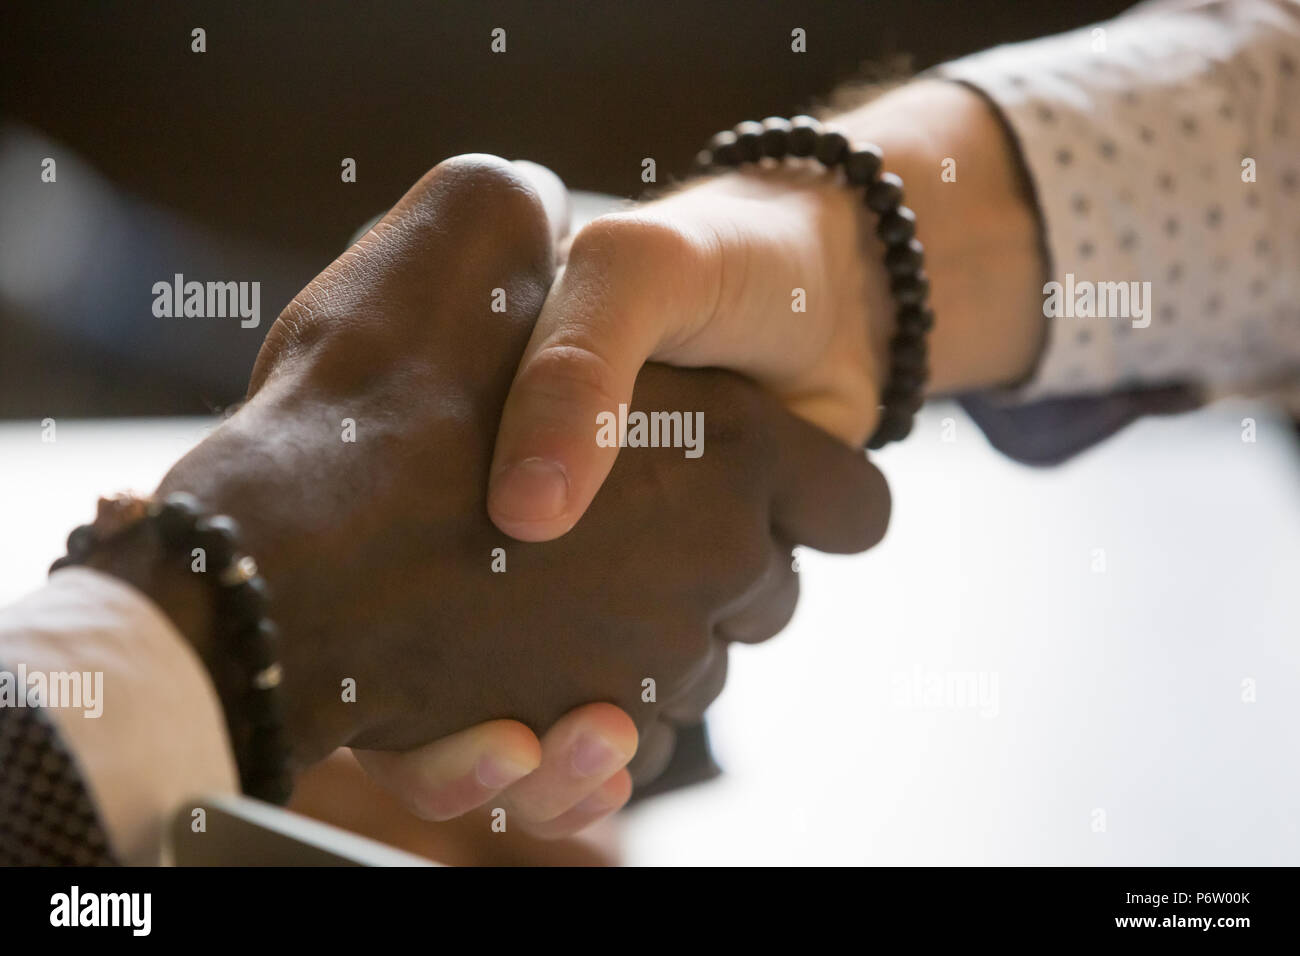 Multiracial people handshaking greeting with achievement or succ - Stock Image